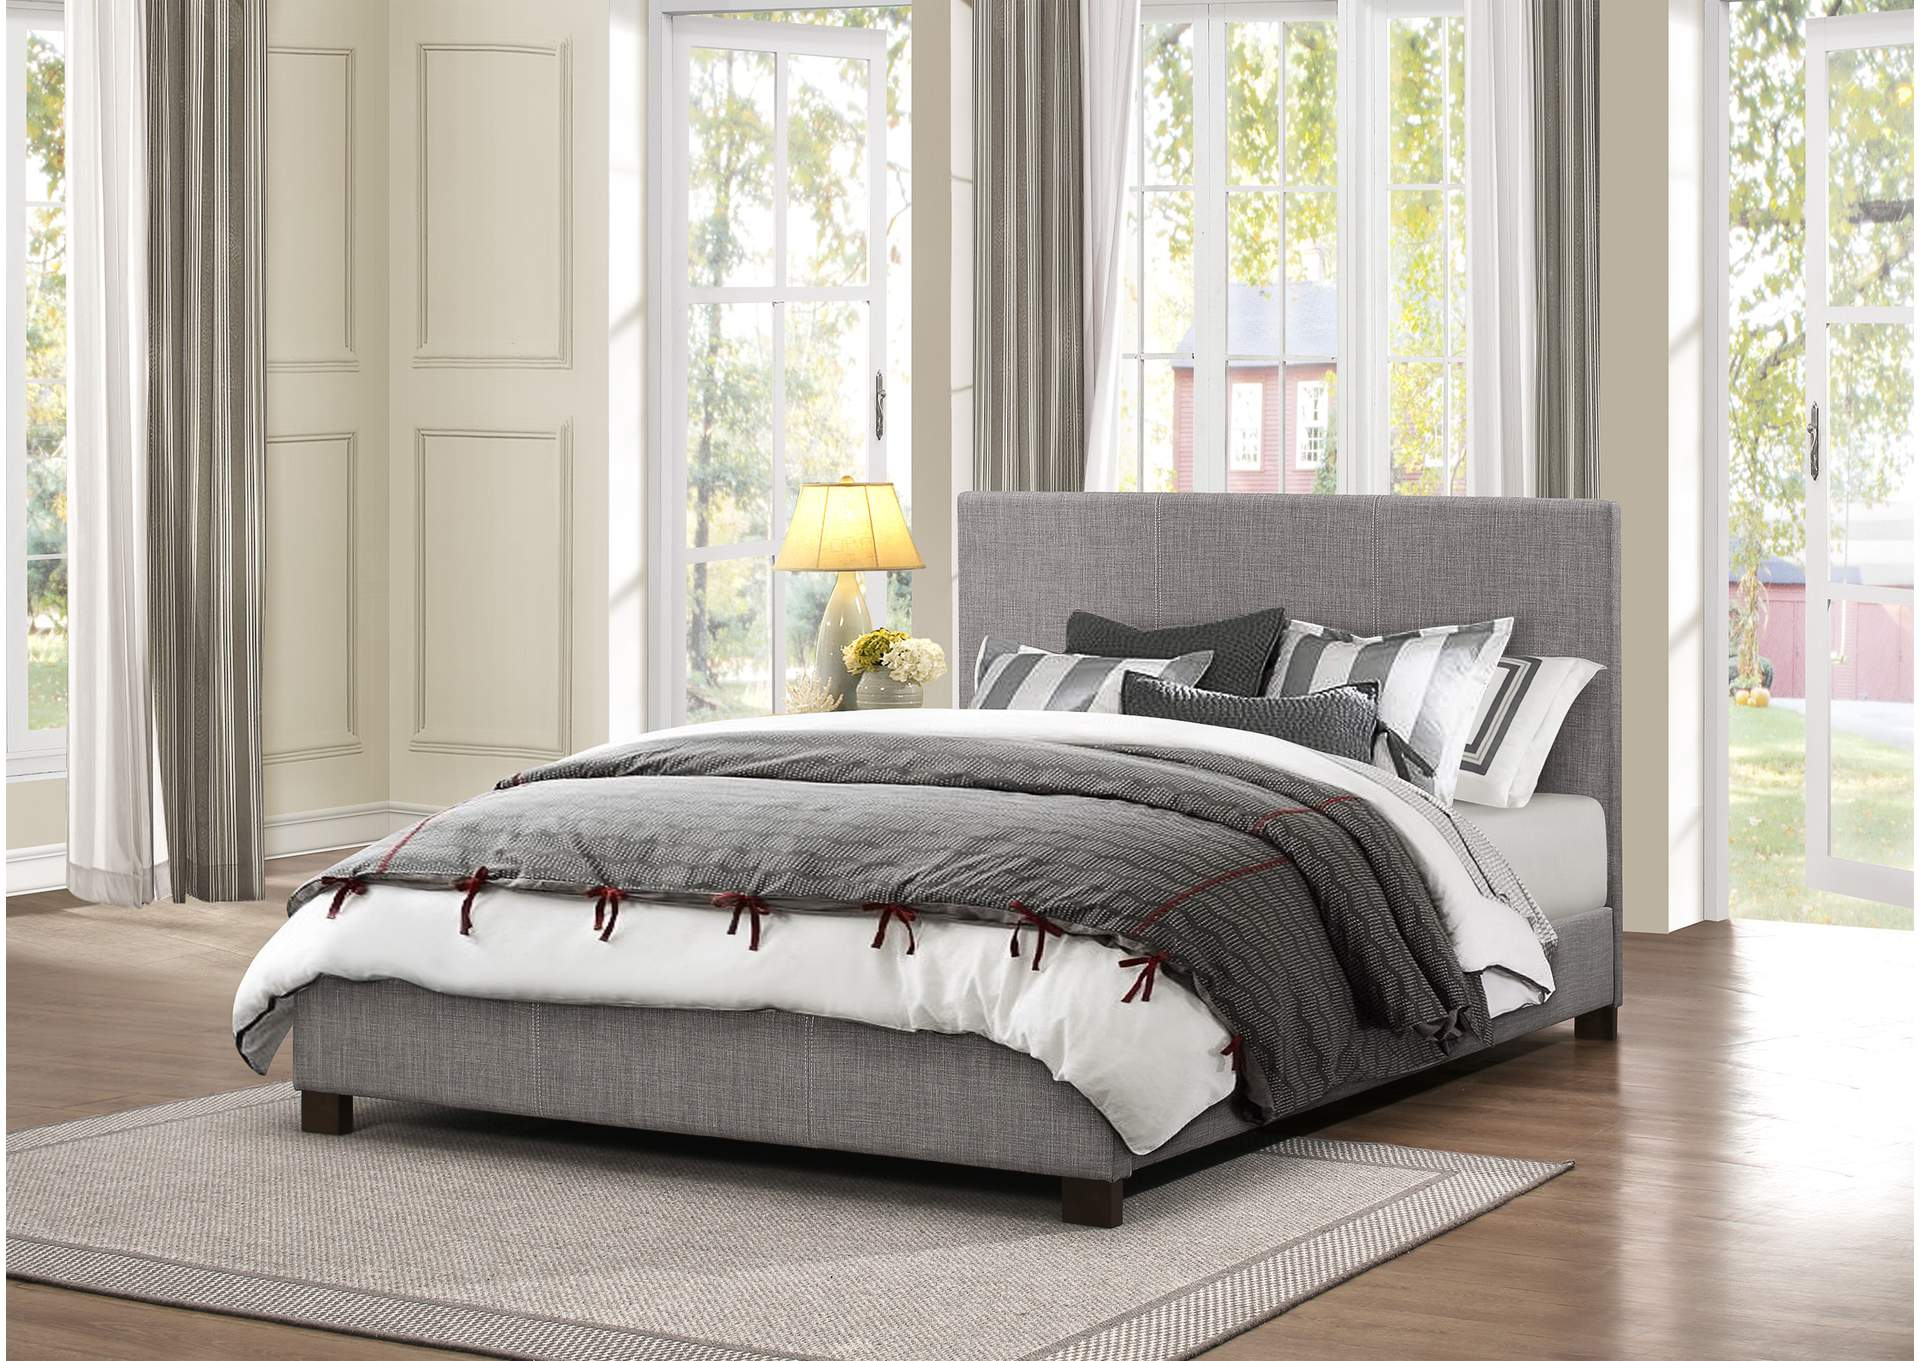 Chasin Gray Upholstered California King Platform Bed,Homelegance